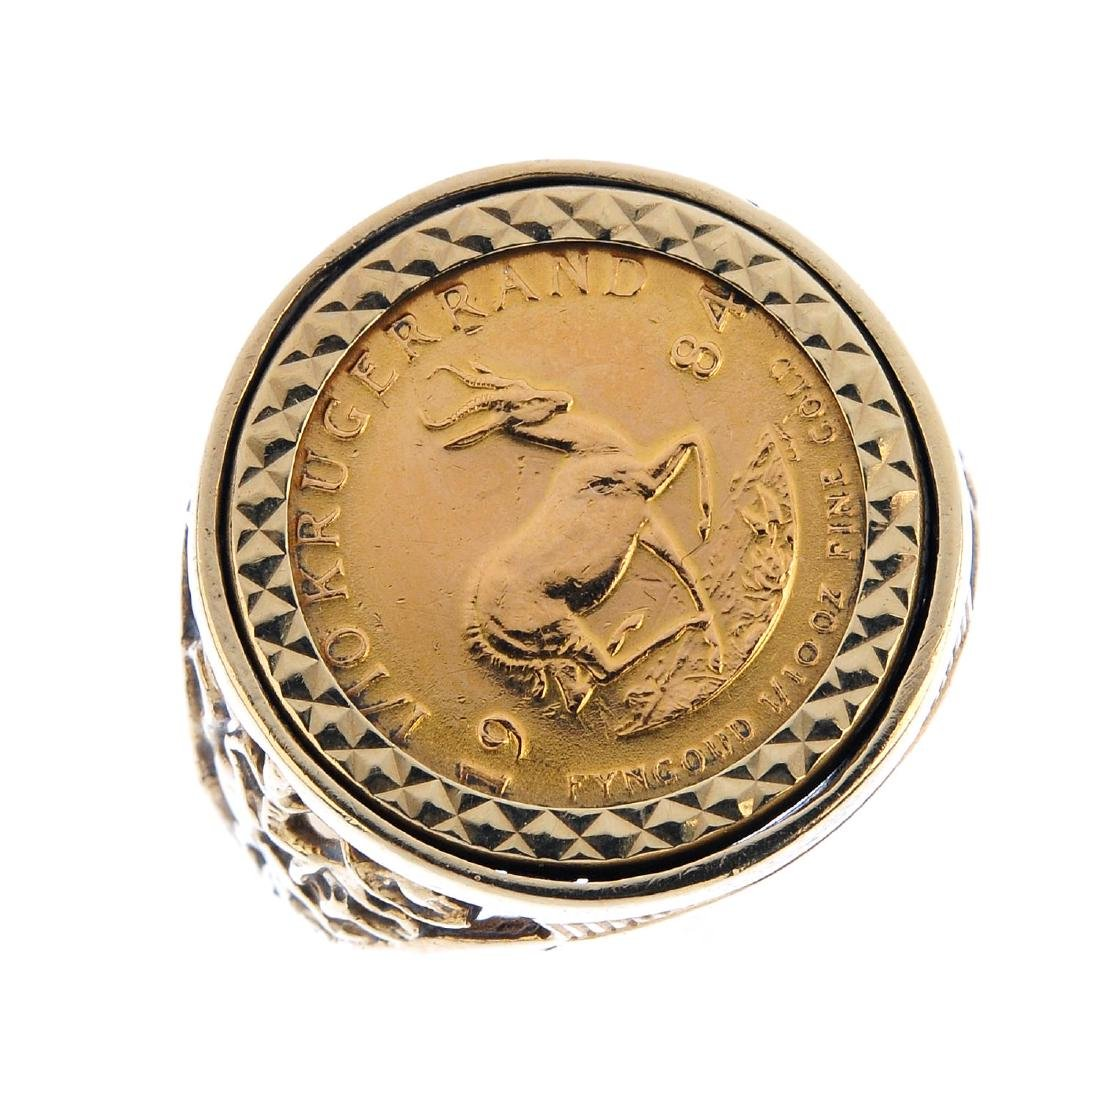 A 9ct gold 1/10th Krugerrand ring. The South African